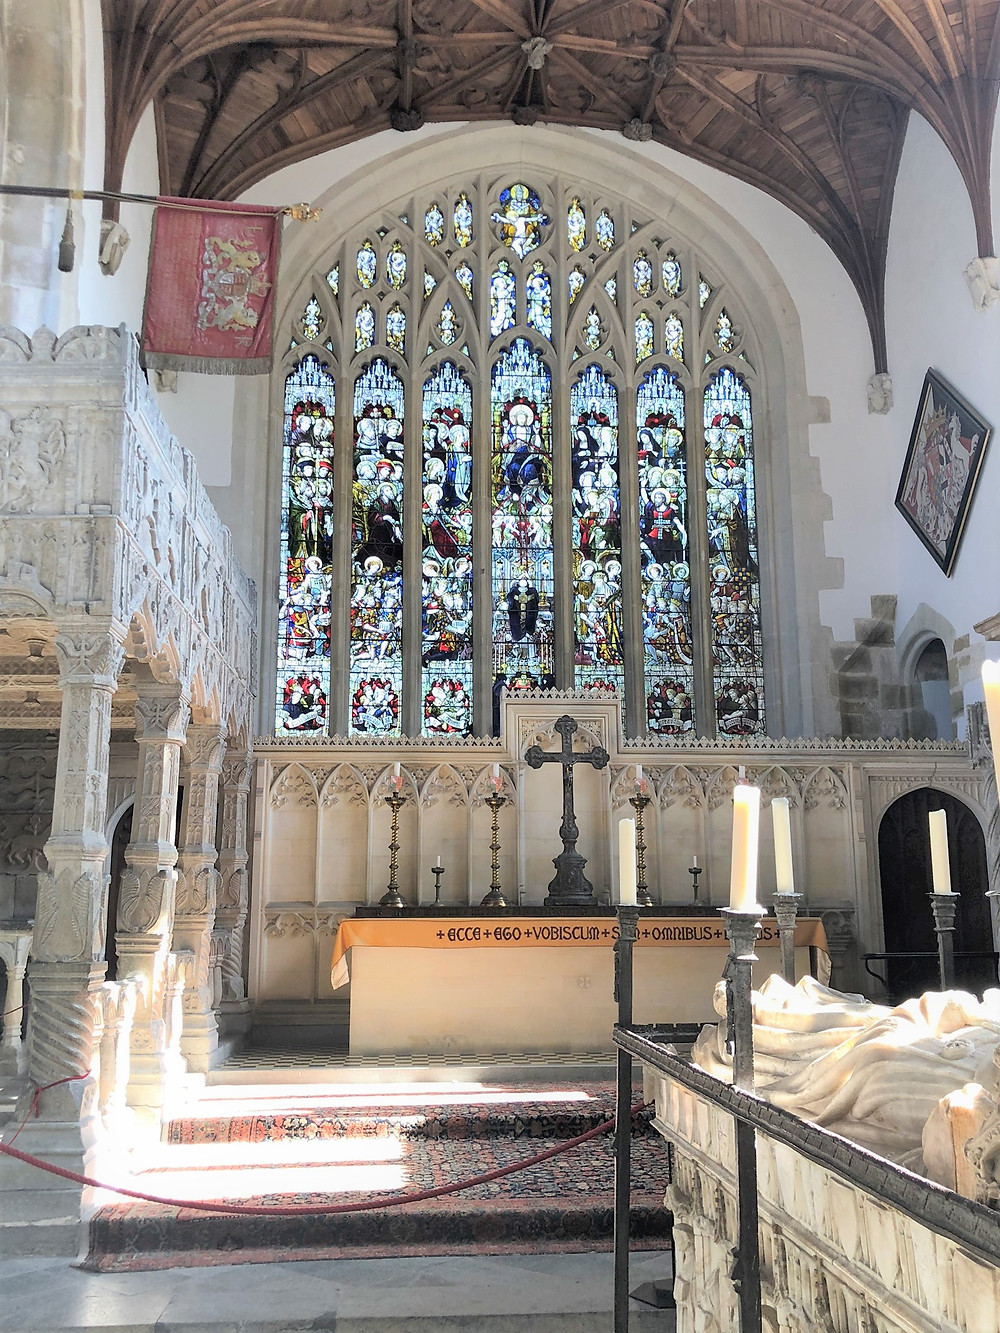 The inside of the Fitzalan Chapel and altar at Arundel Castle